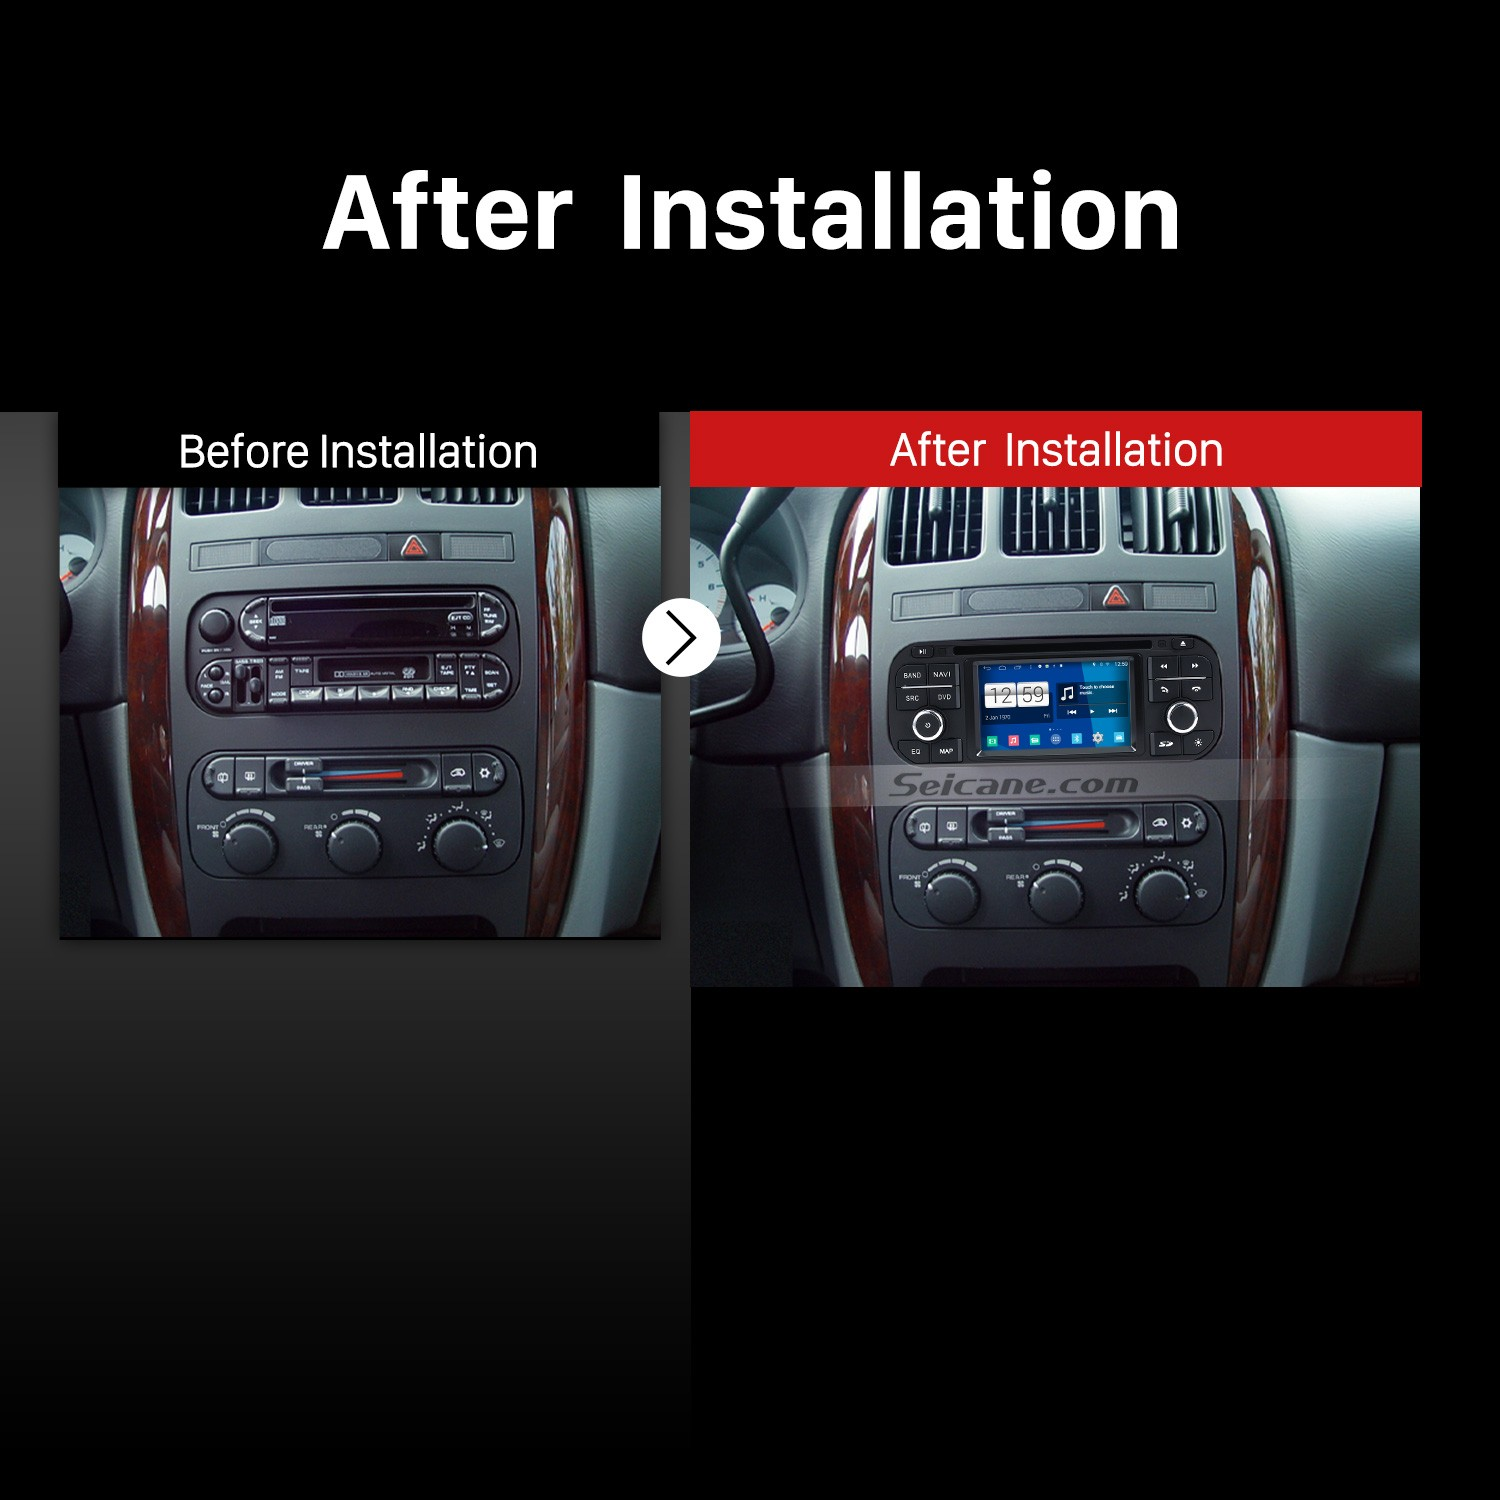 2004 Dodge Ram Stereo Install Wiring Diagrams 2500 Radio Diagram How To Update A 2002 2003 Interpid With Gps Rh Carstereofaqs Com 1500